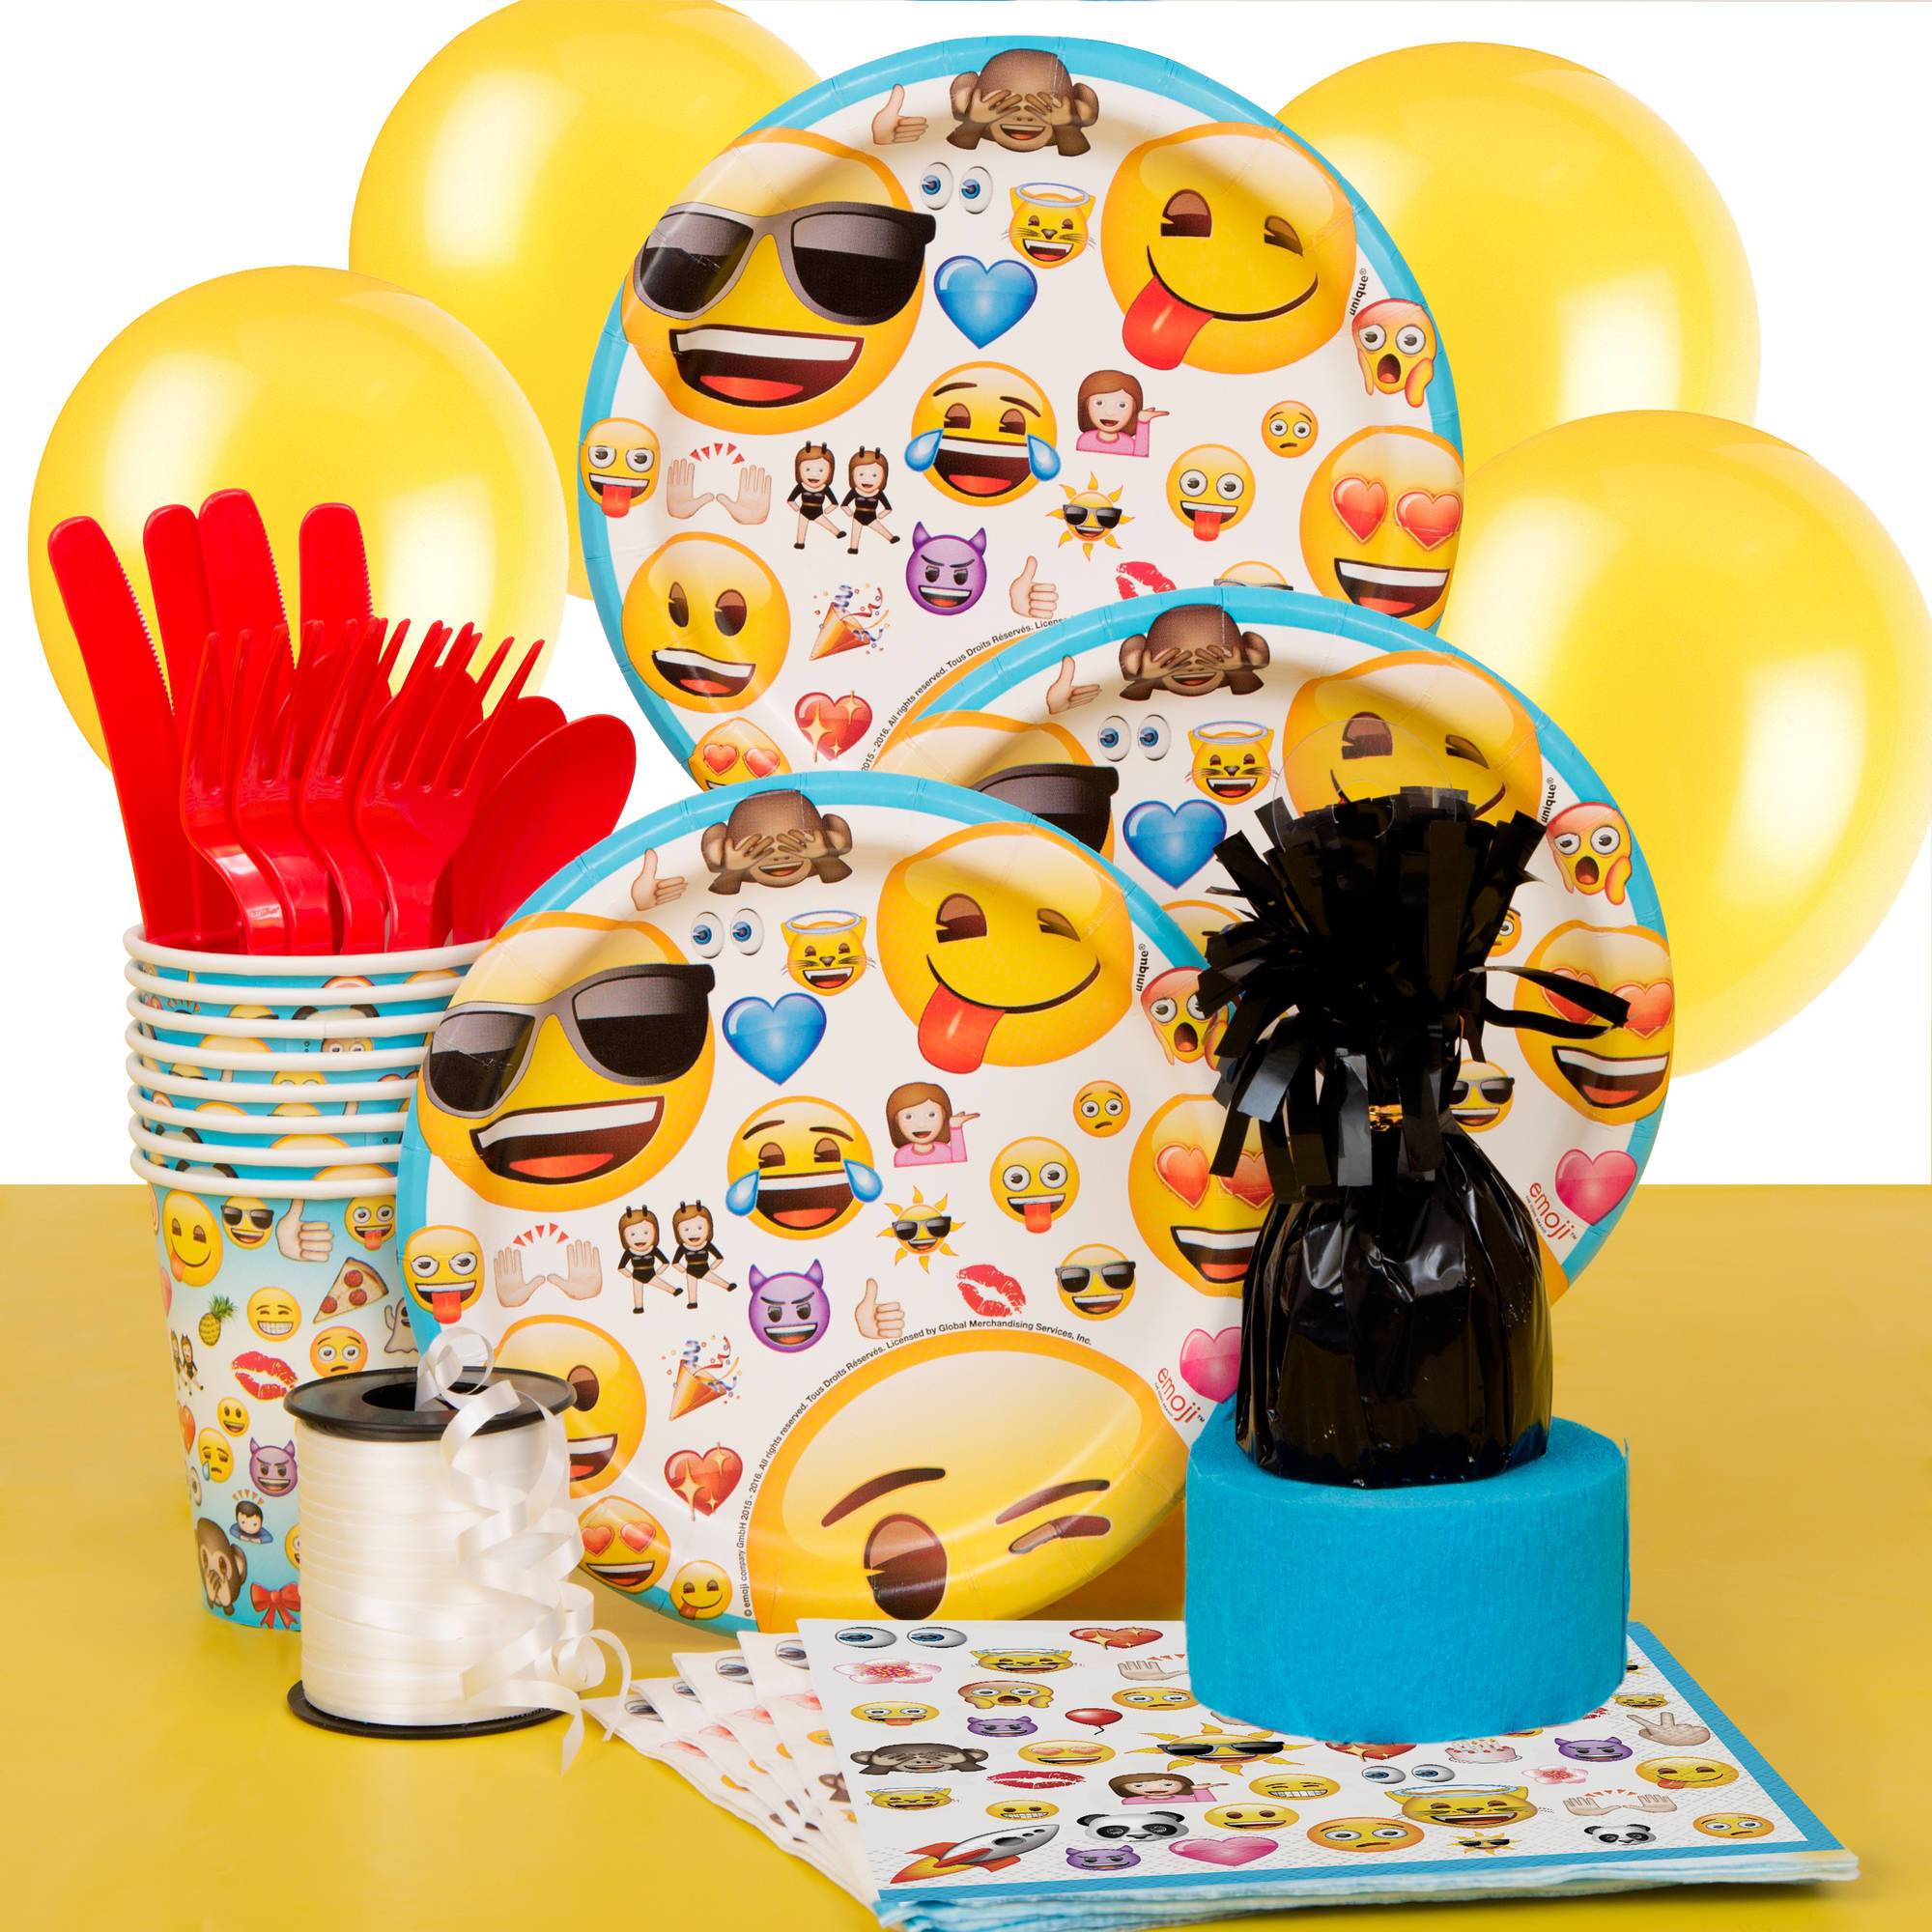 2000x2000 Emoji Party Supplies Kit for 8